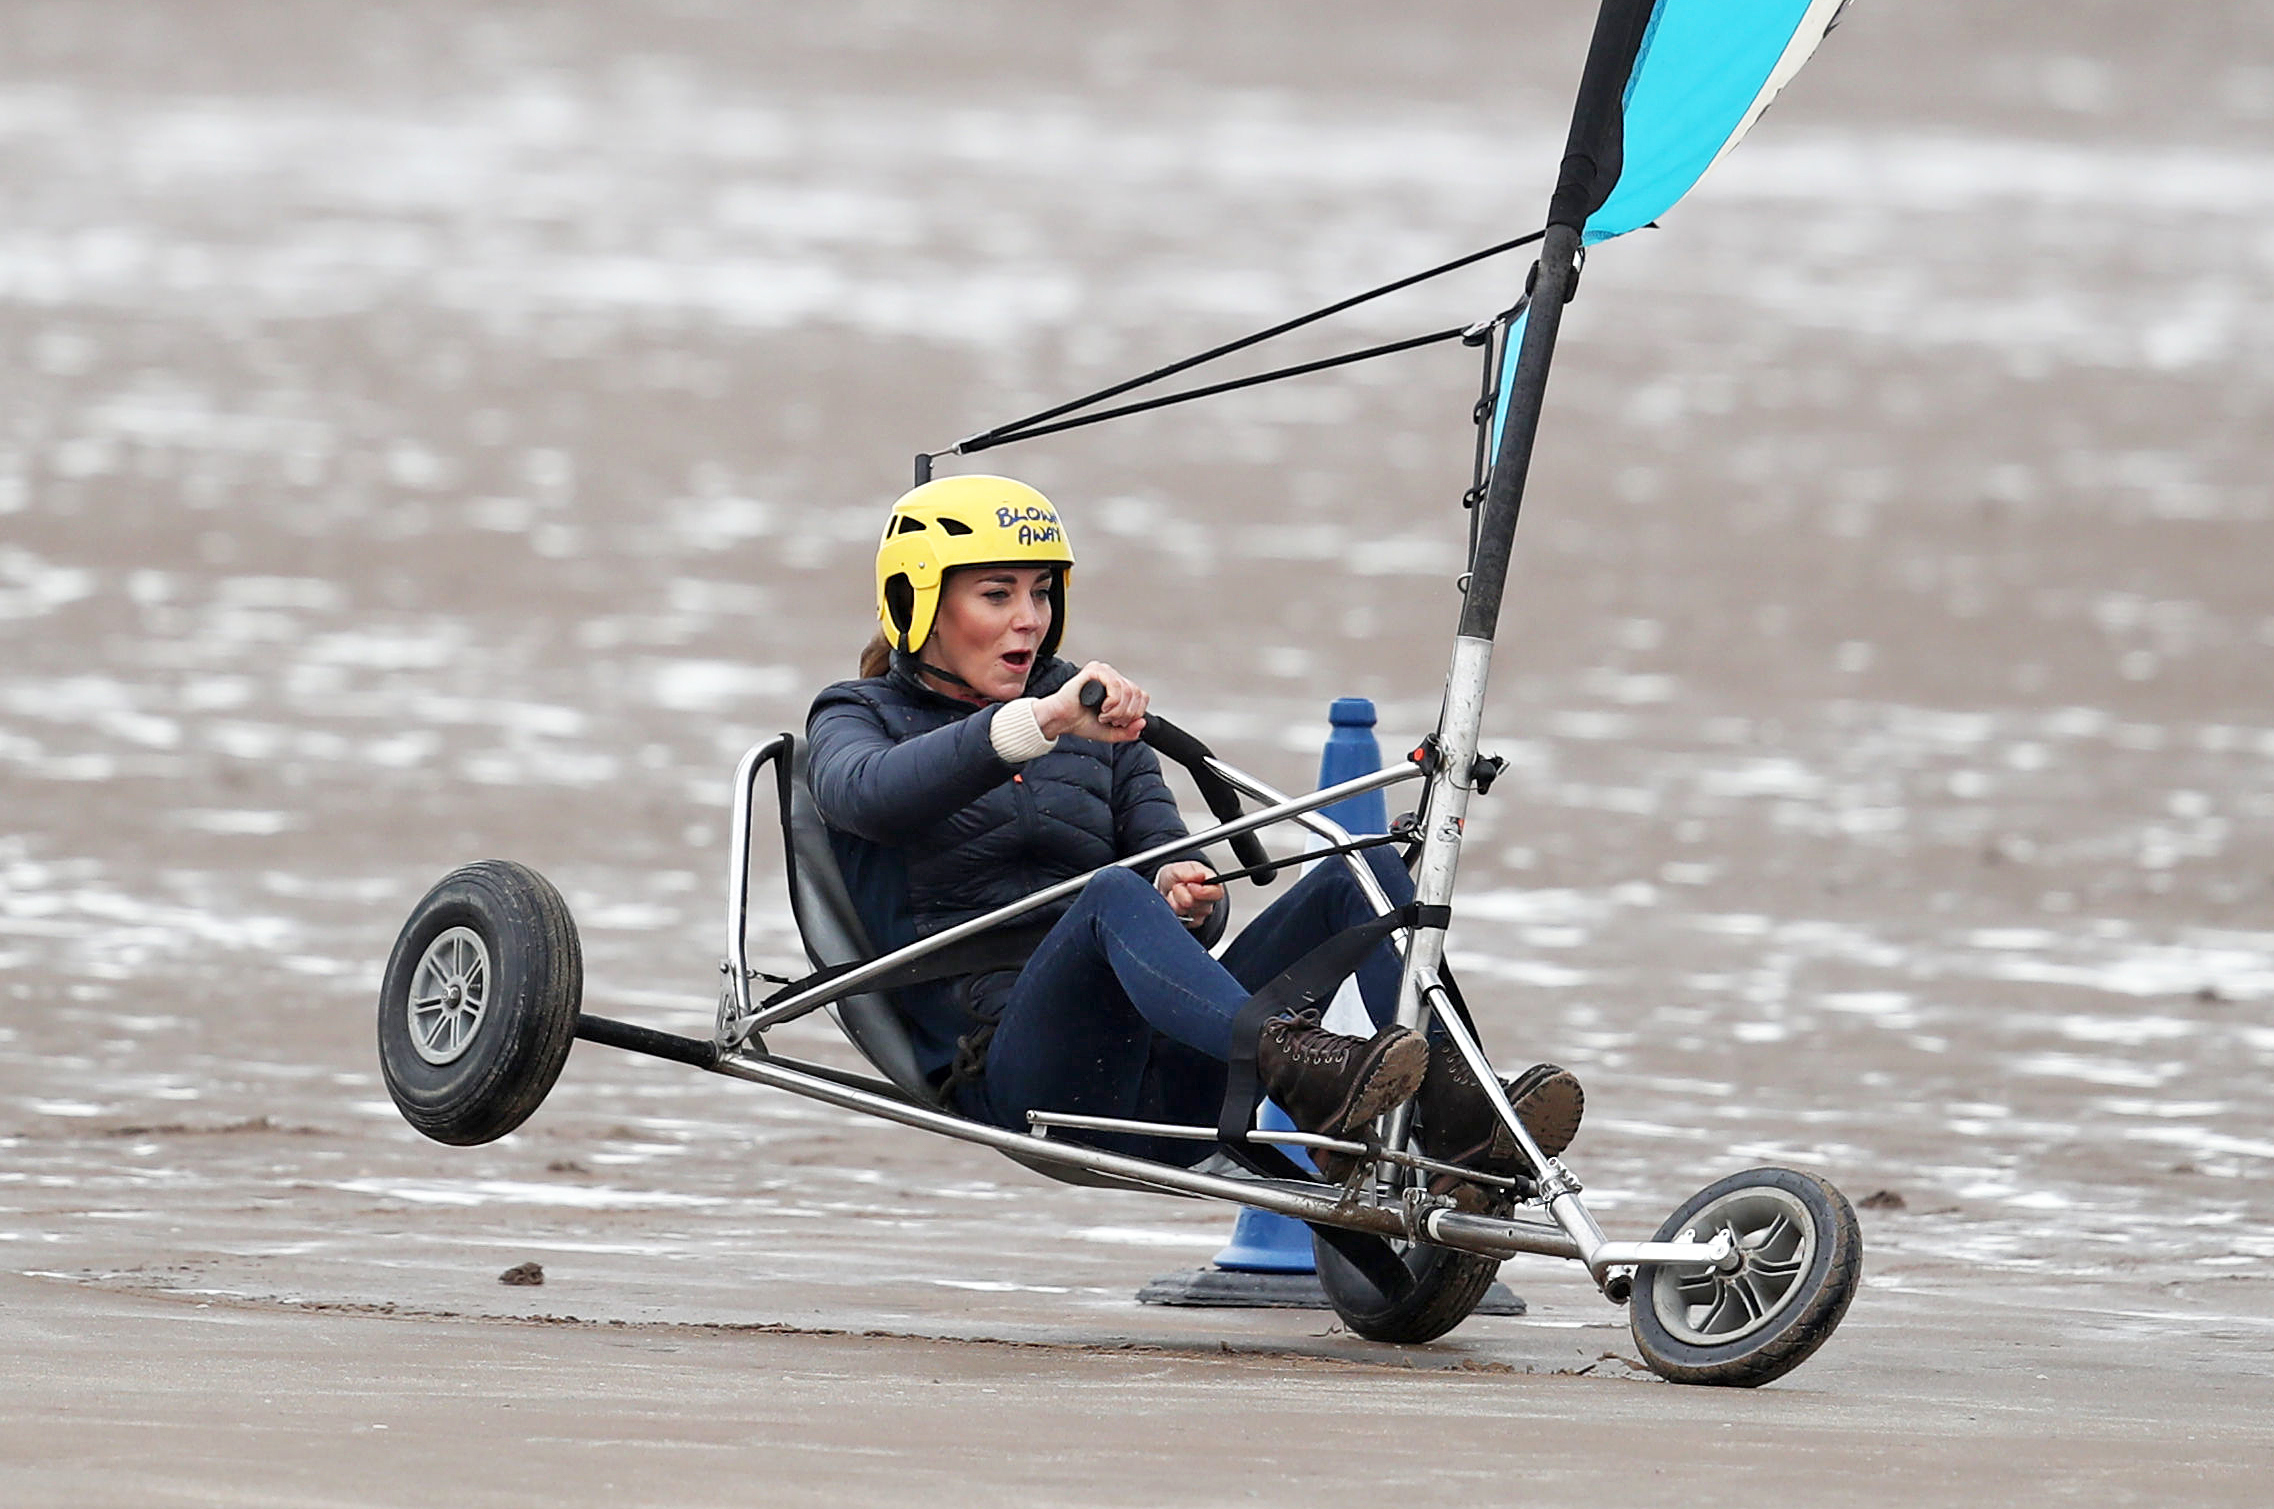 <p>The Duchess of Cambridge land yachting on the beach at St Andrews. Picture date: Wednesday May 26, 2021.</p>